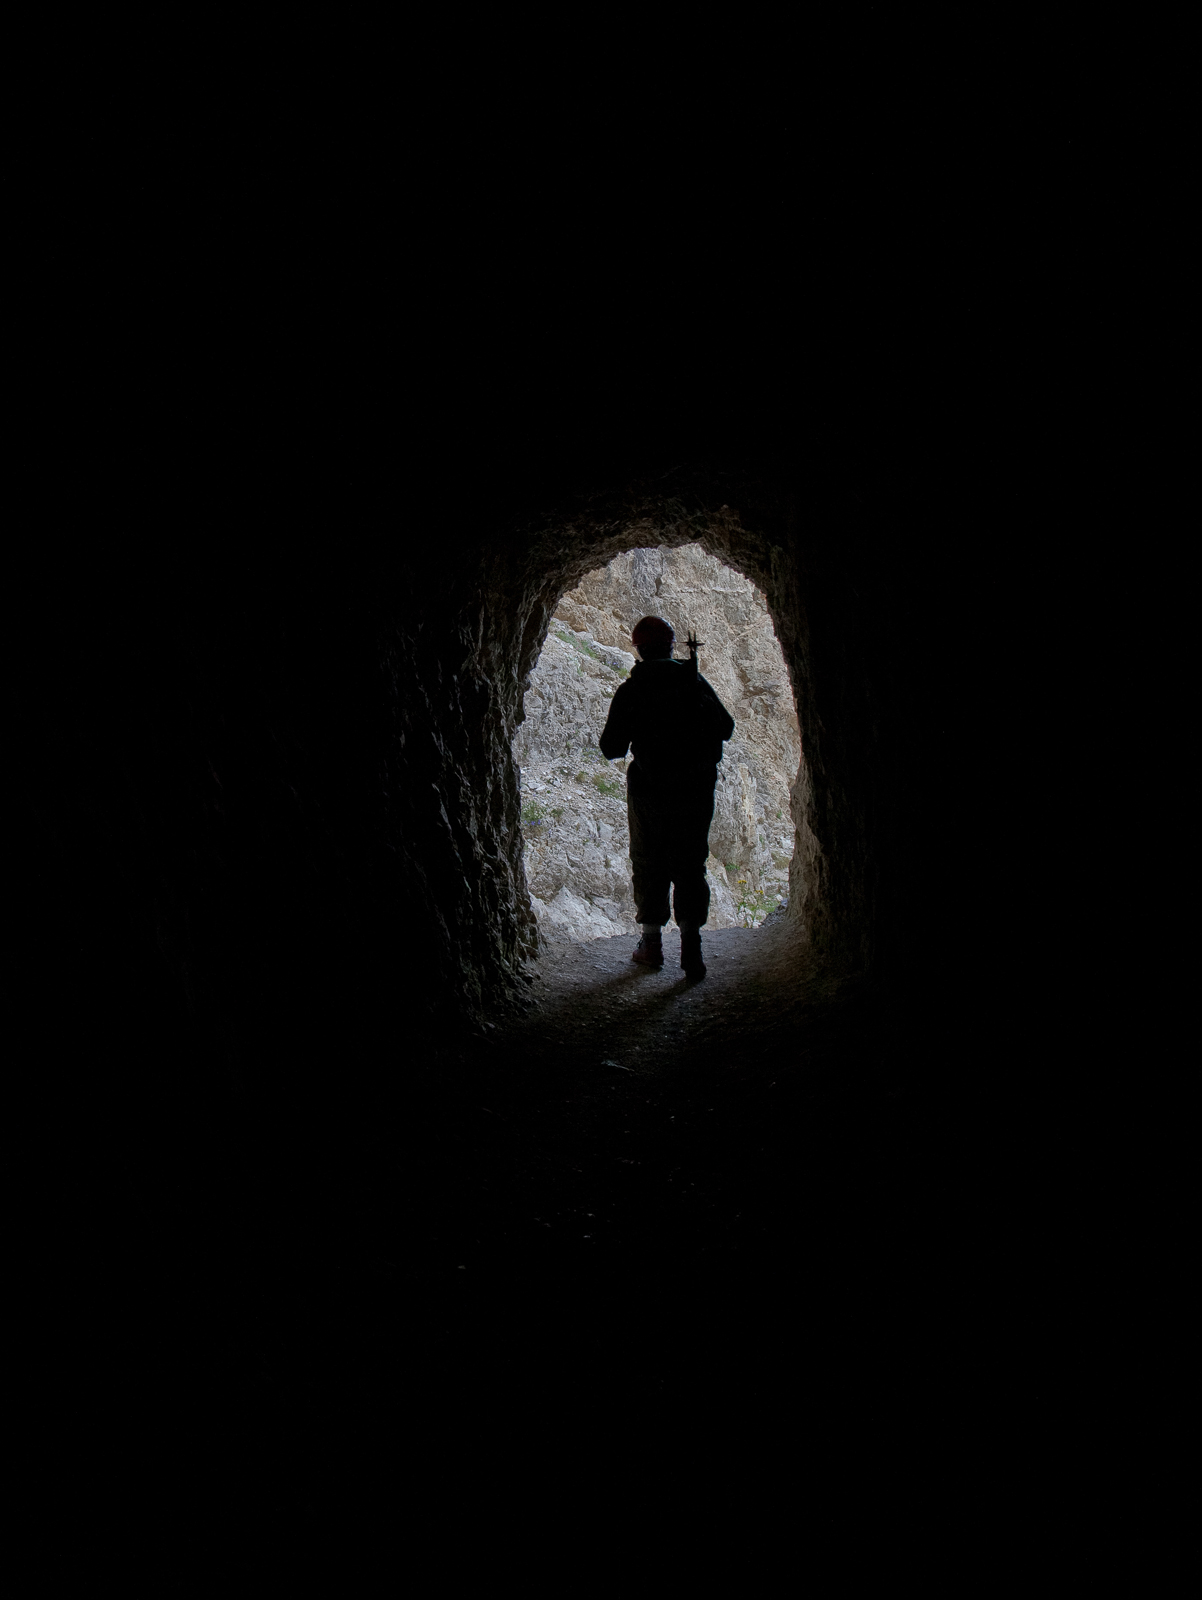 At the end of a long dark tunnel, the light of hope...